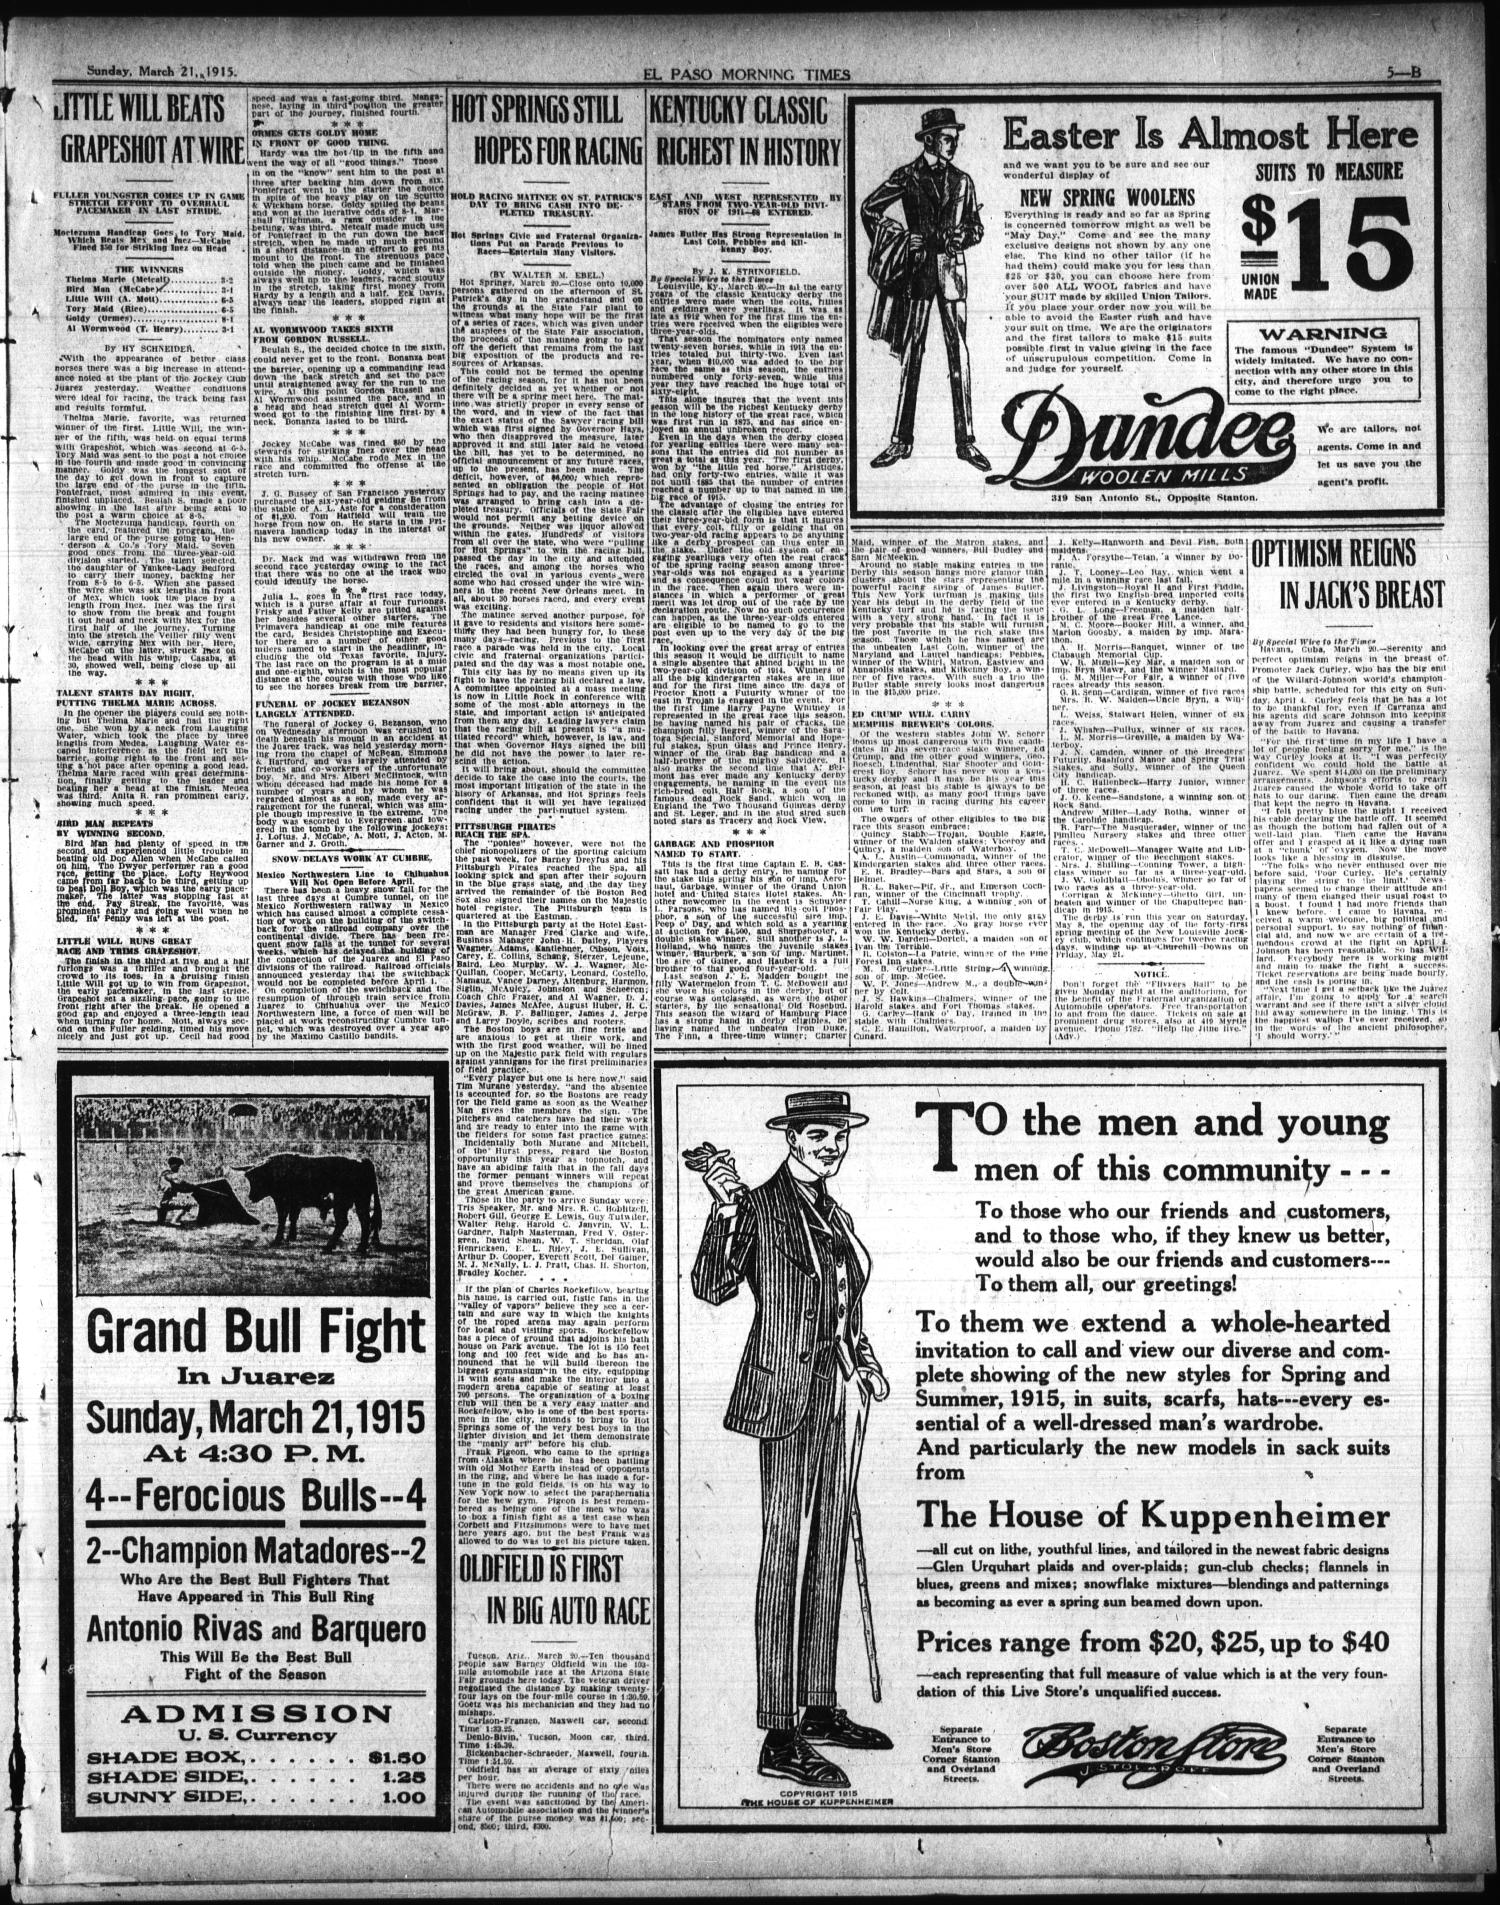 El Paso Morning Times Tex Vol 35th Year Ed 1 Sunday Ecer Combat Gainer Xl 2 Lbs March 21 1915 Page 23 Of 36 The Portal To Texas History